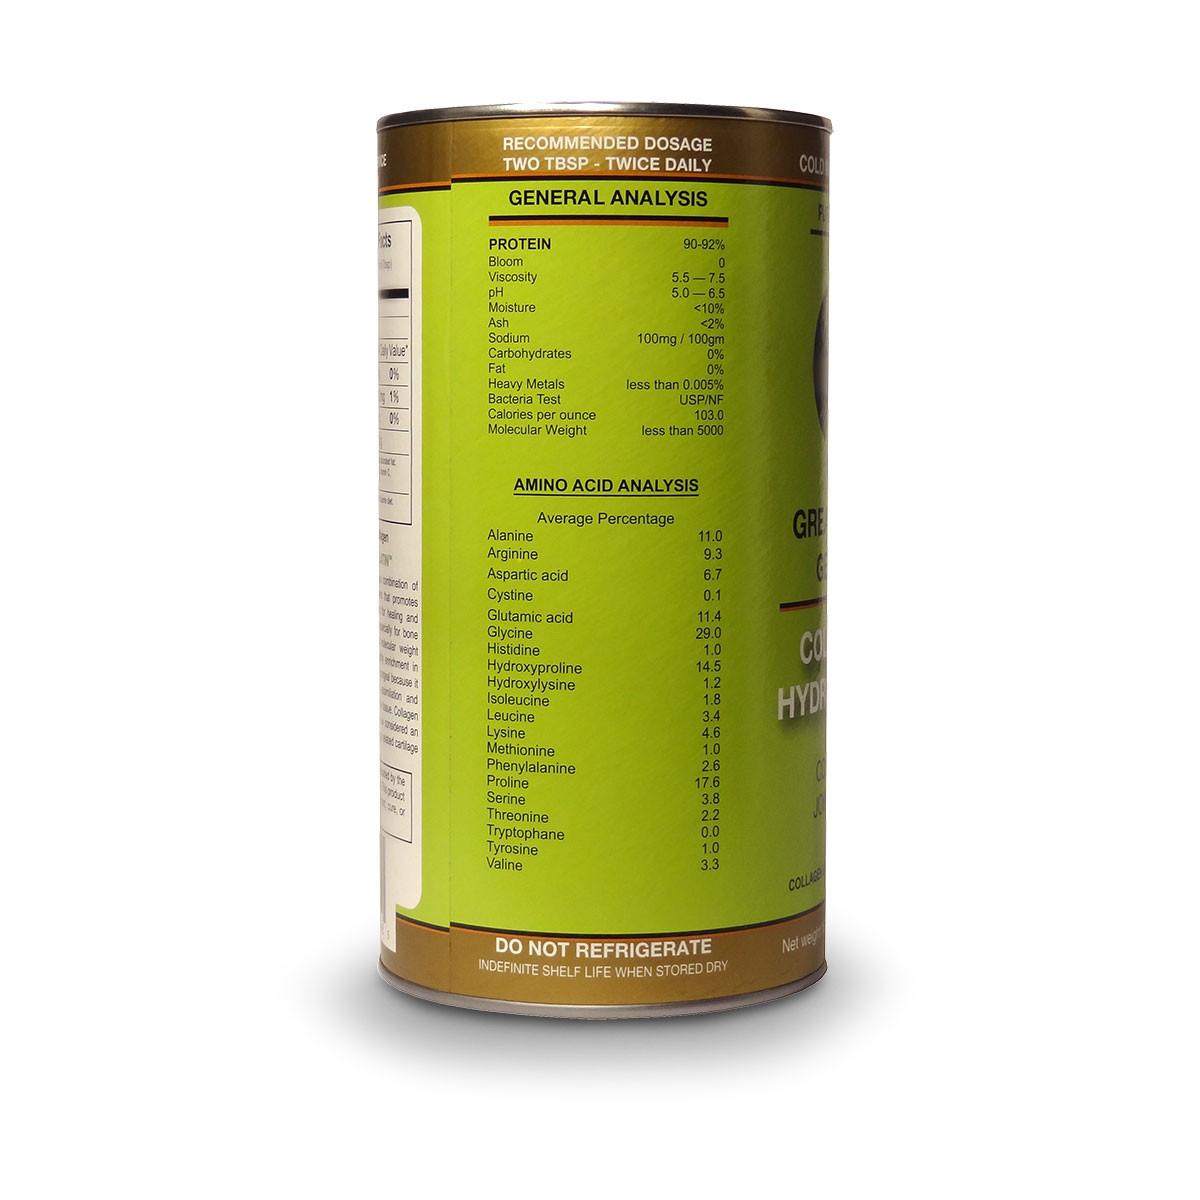 View of label side with dosage instructions, amino acid analysis and general analysis for Great Lakes Collagen Hydrolysate.